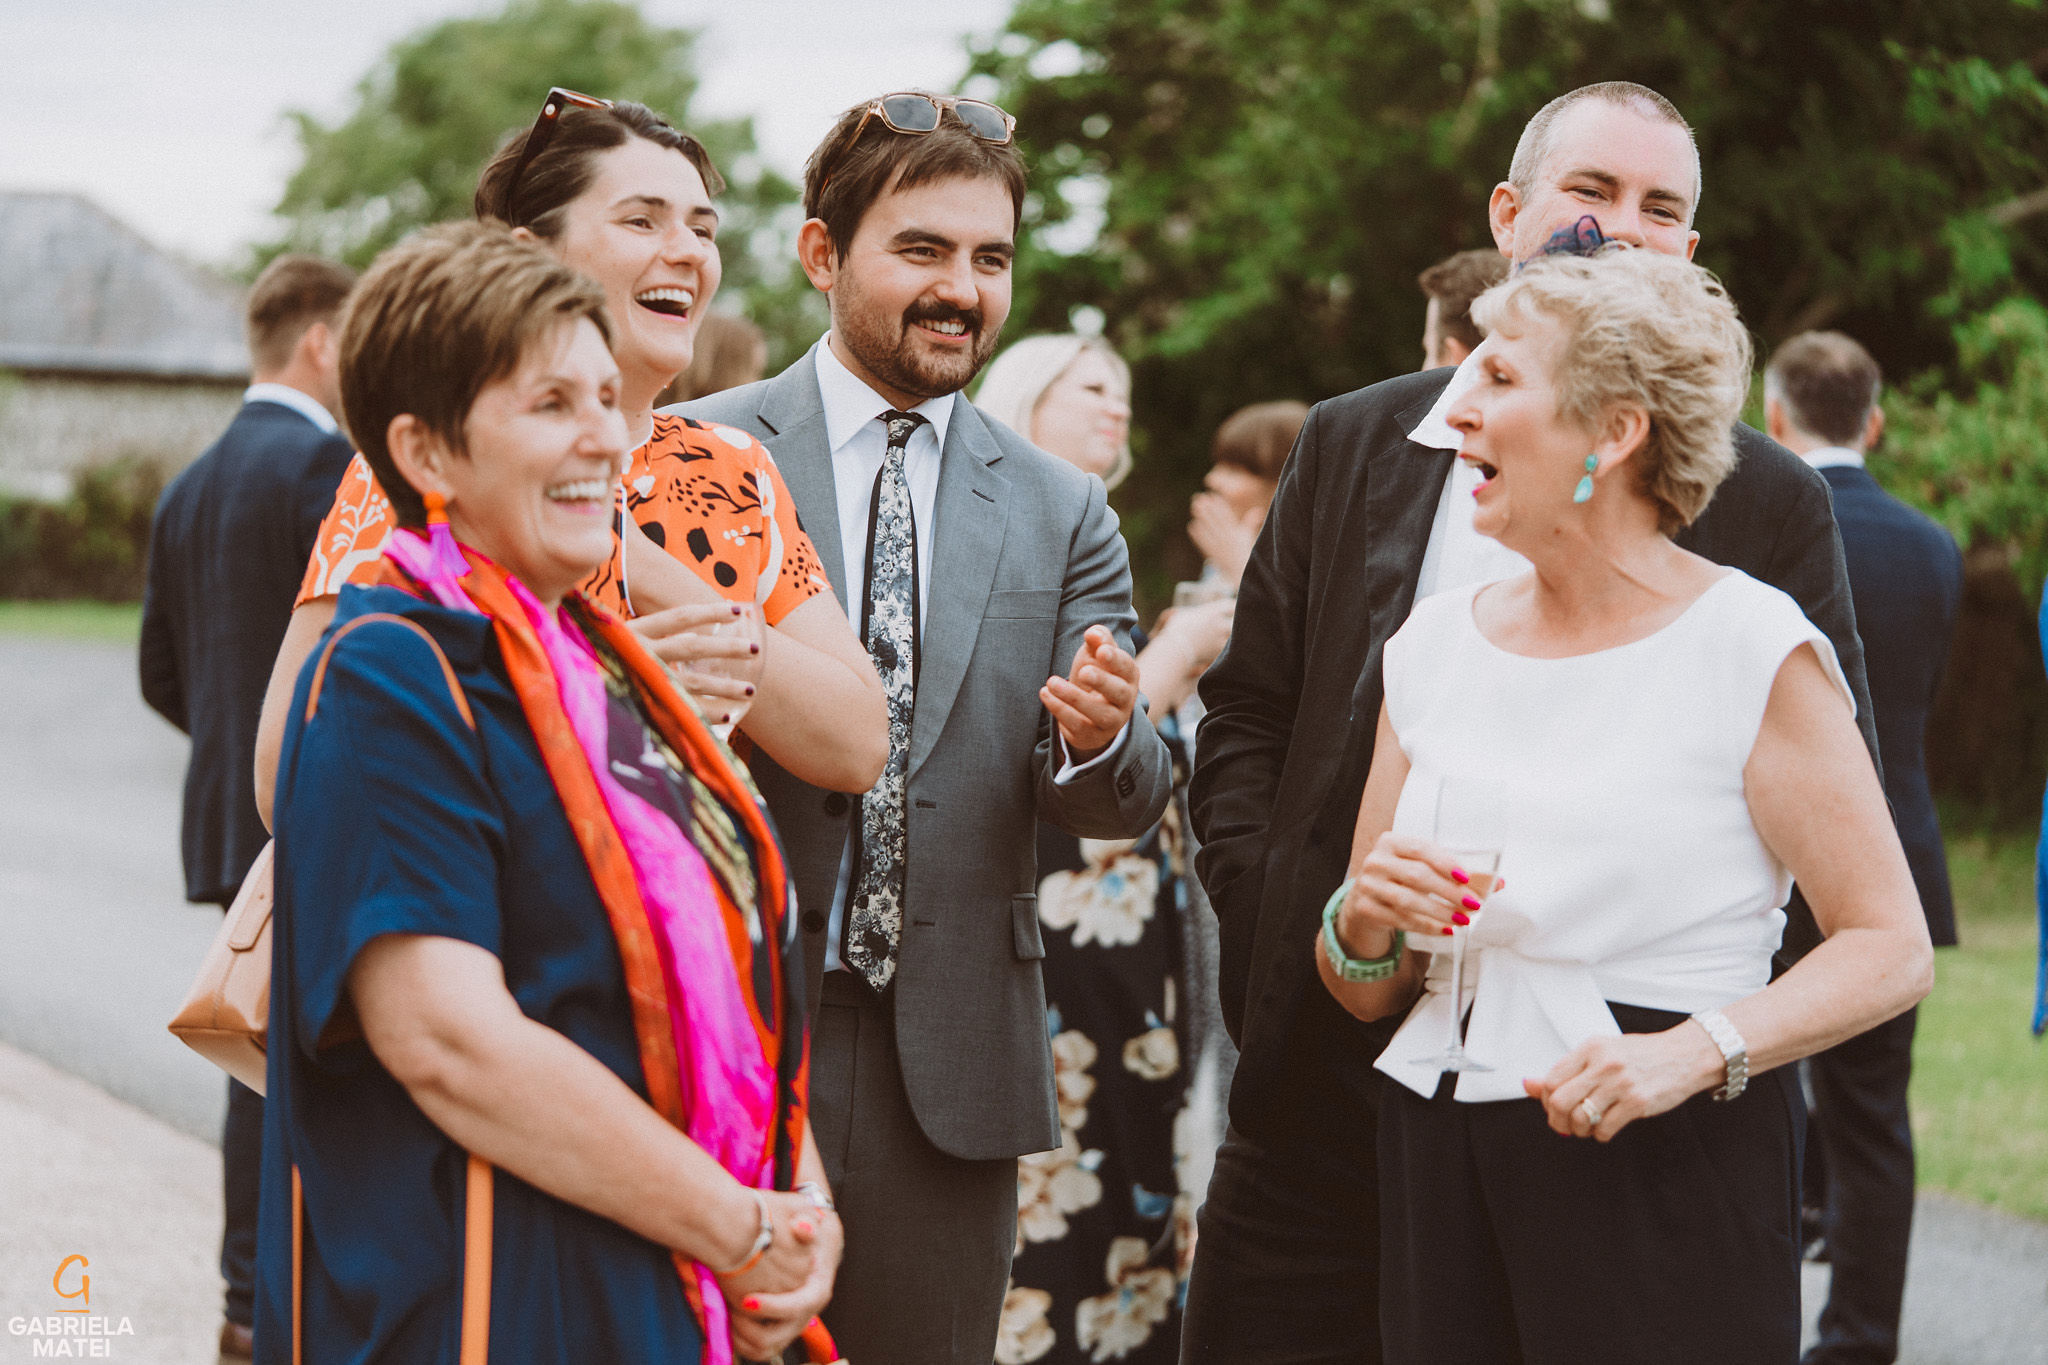 wedding guests at South Stoke Barn wedding venue in Arundel by gabriela matei sussex photographer